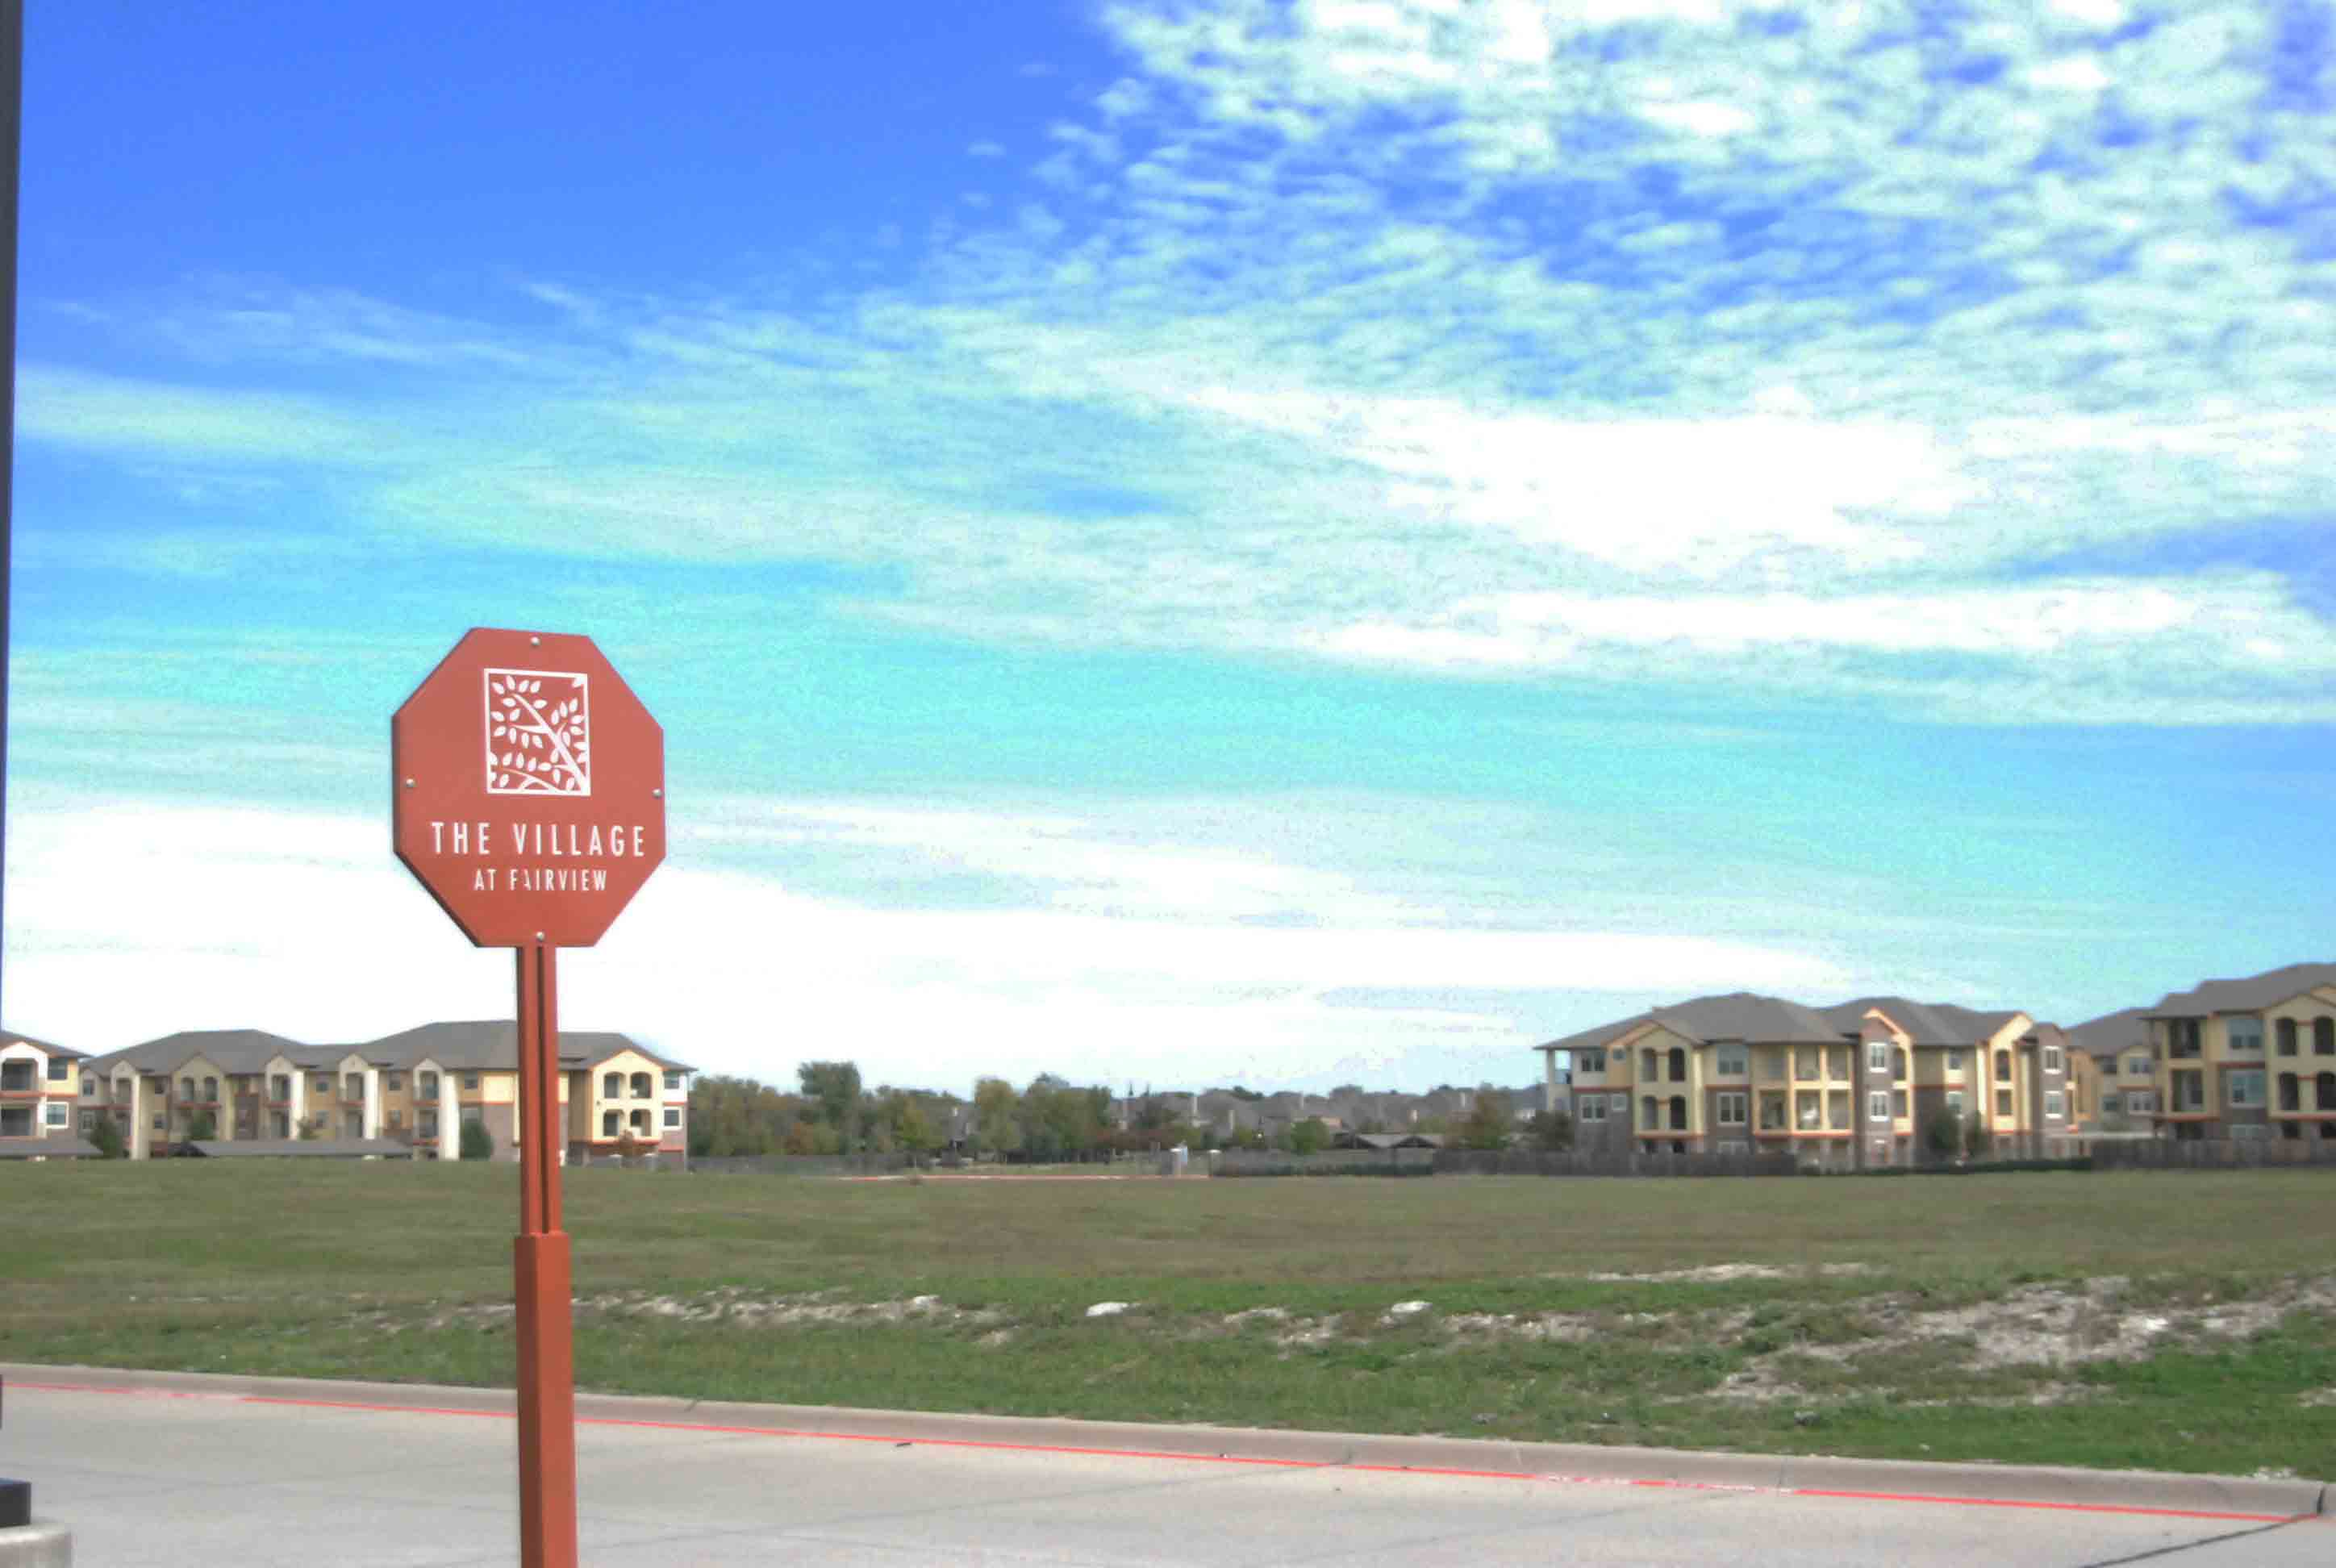 Located across from the sand volleyball courts at The Village of Fairview, this empty lot is slated to be the home of a new Residence Inn.  Construction is scheduled to begin in December 2015.